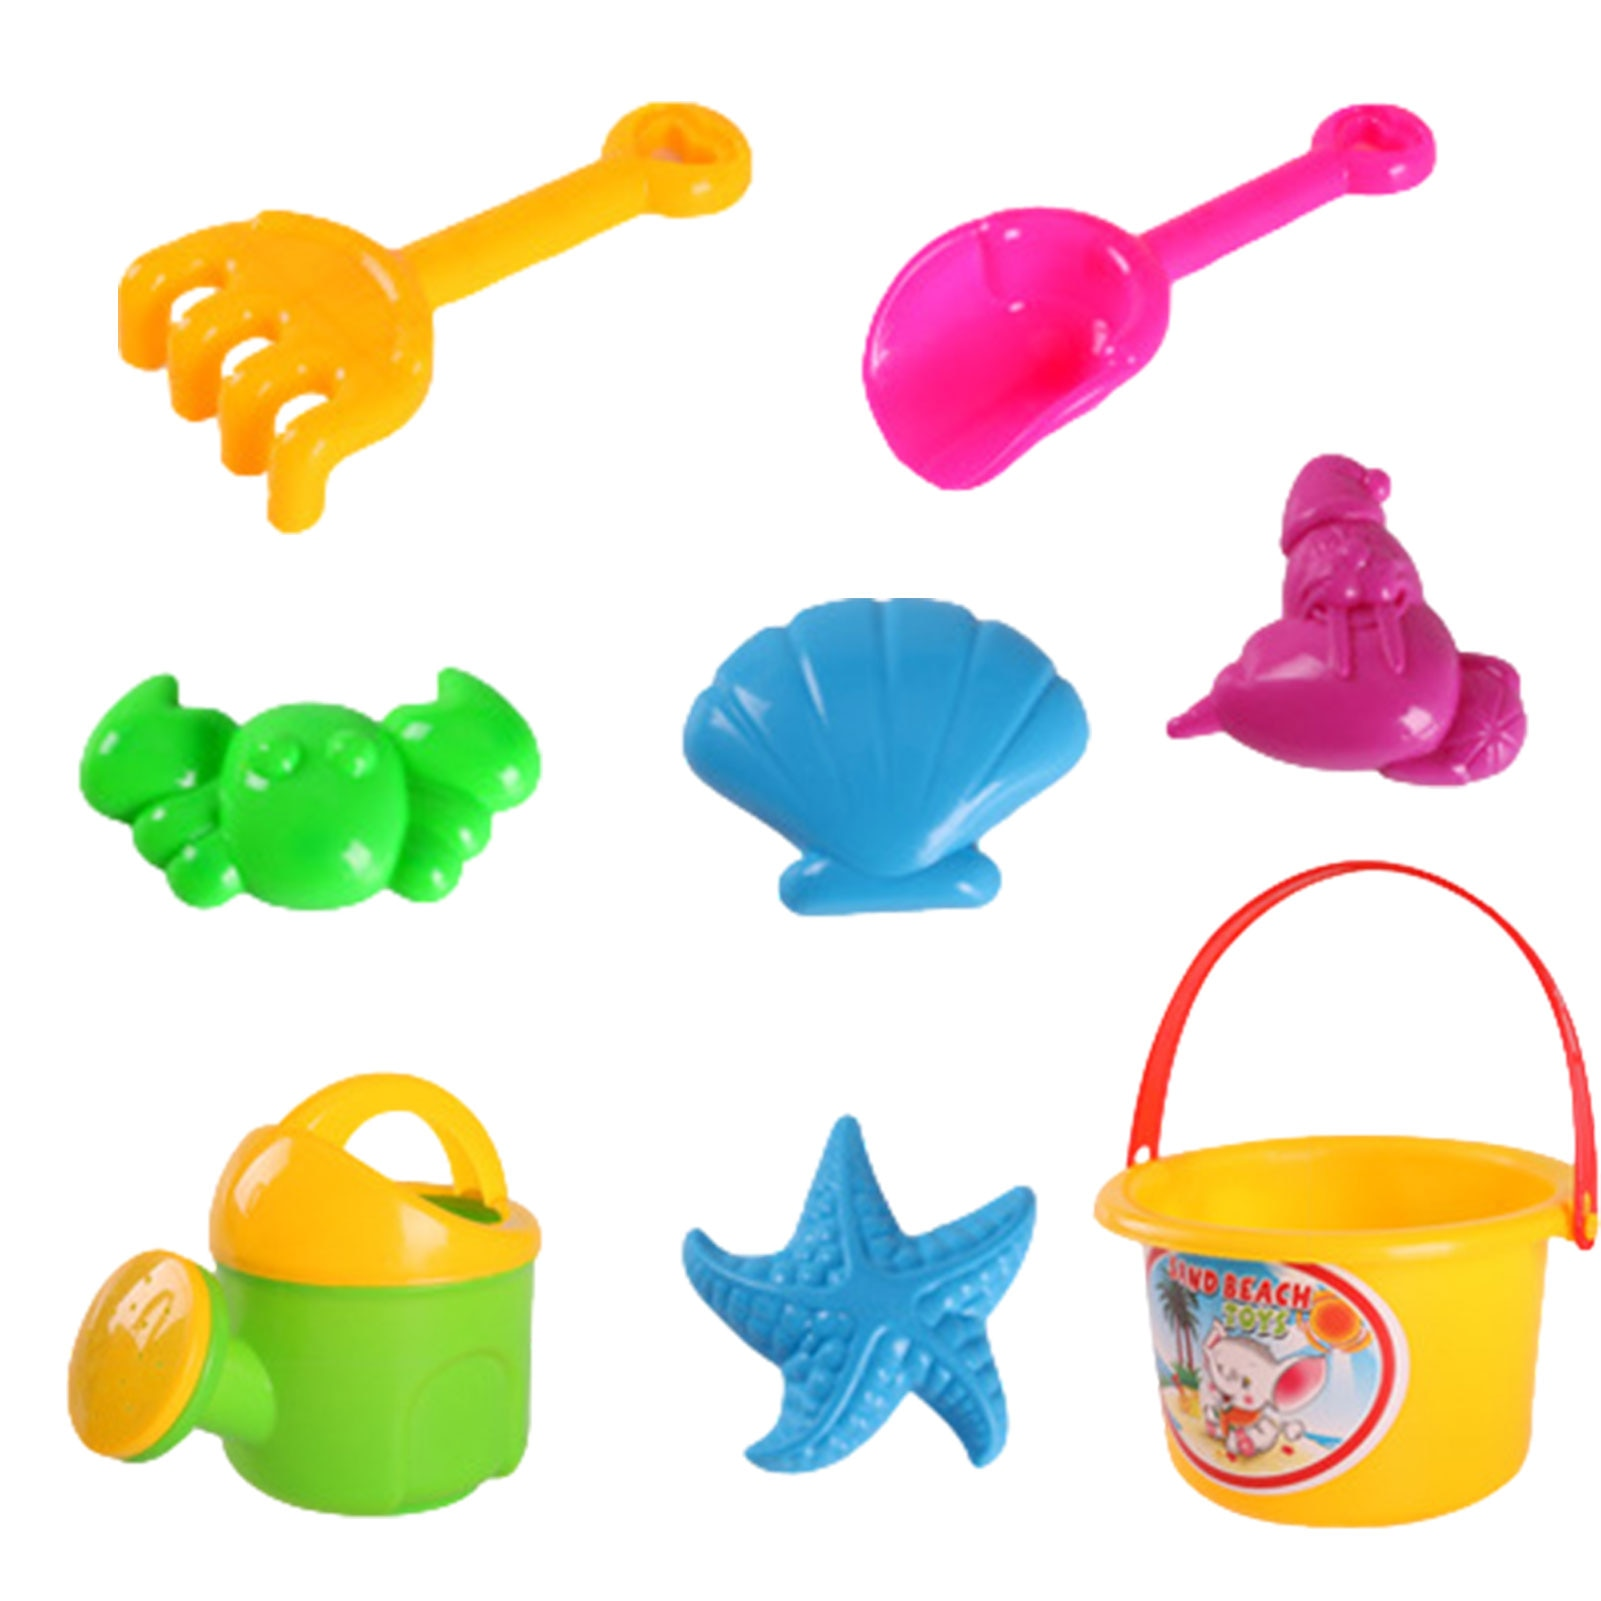 Children Pretend Play Toy Set Harmless 8 Pieces Beach Plaything Five Colors Mixed 8 Products The Colors Are Shipped Randomly